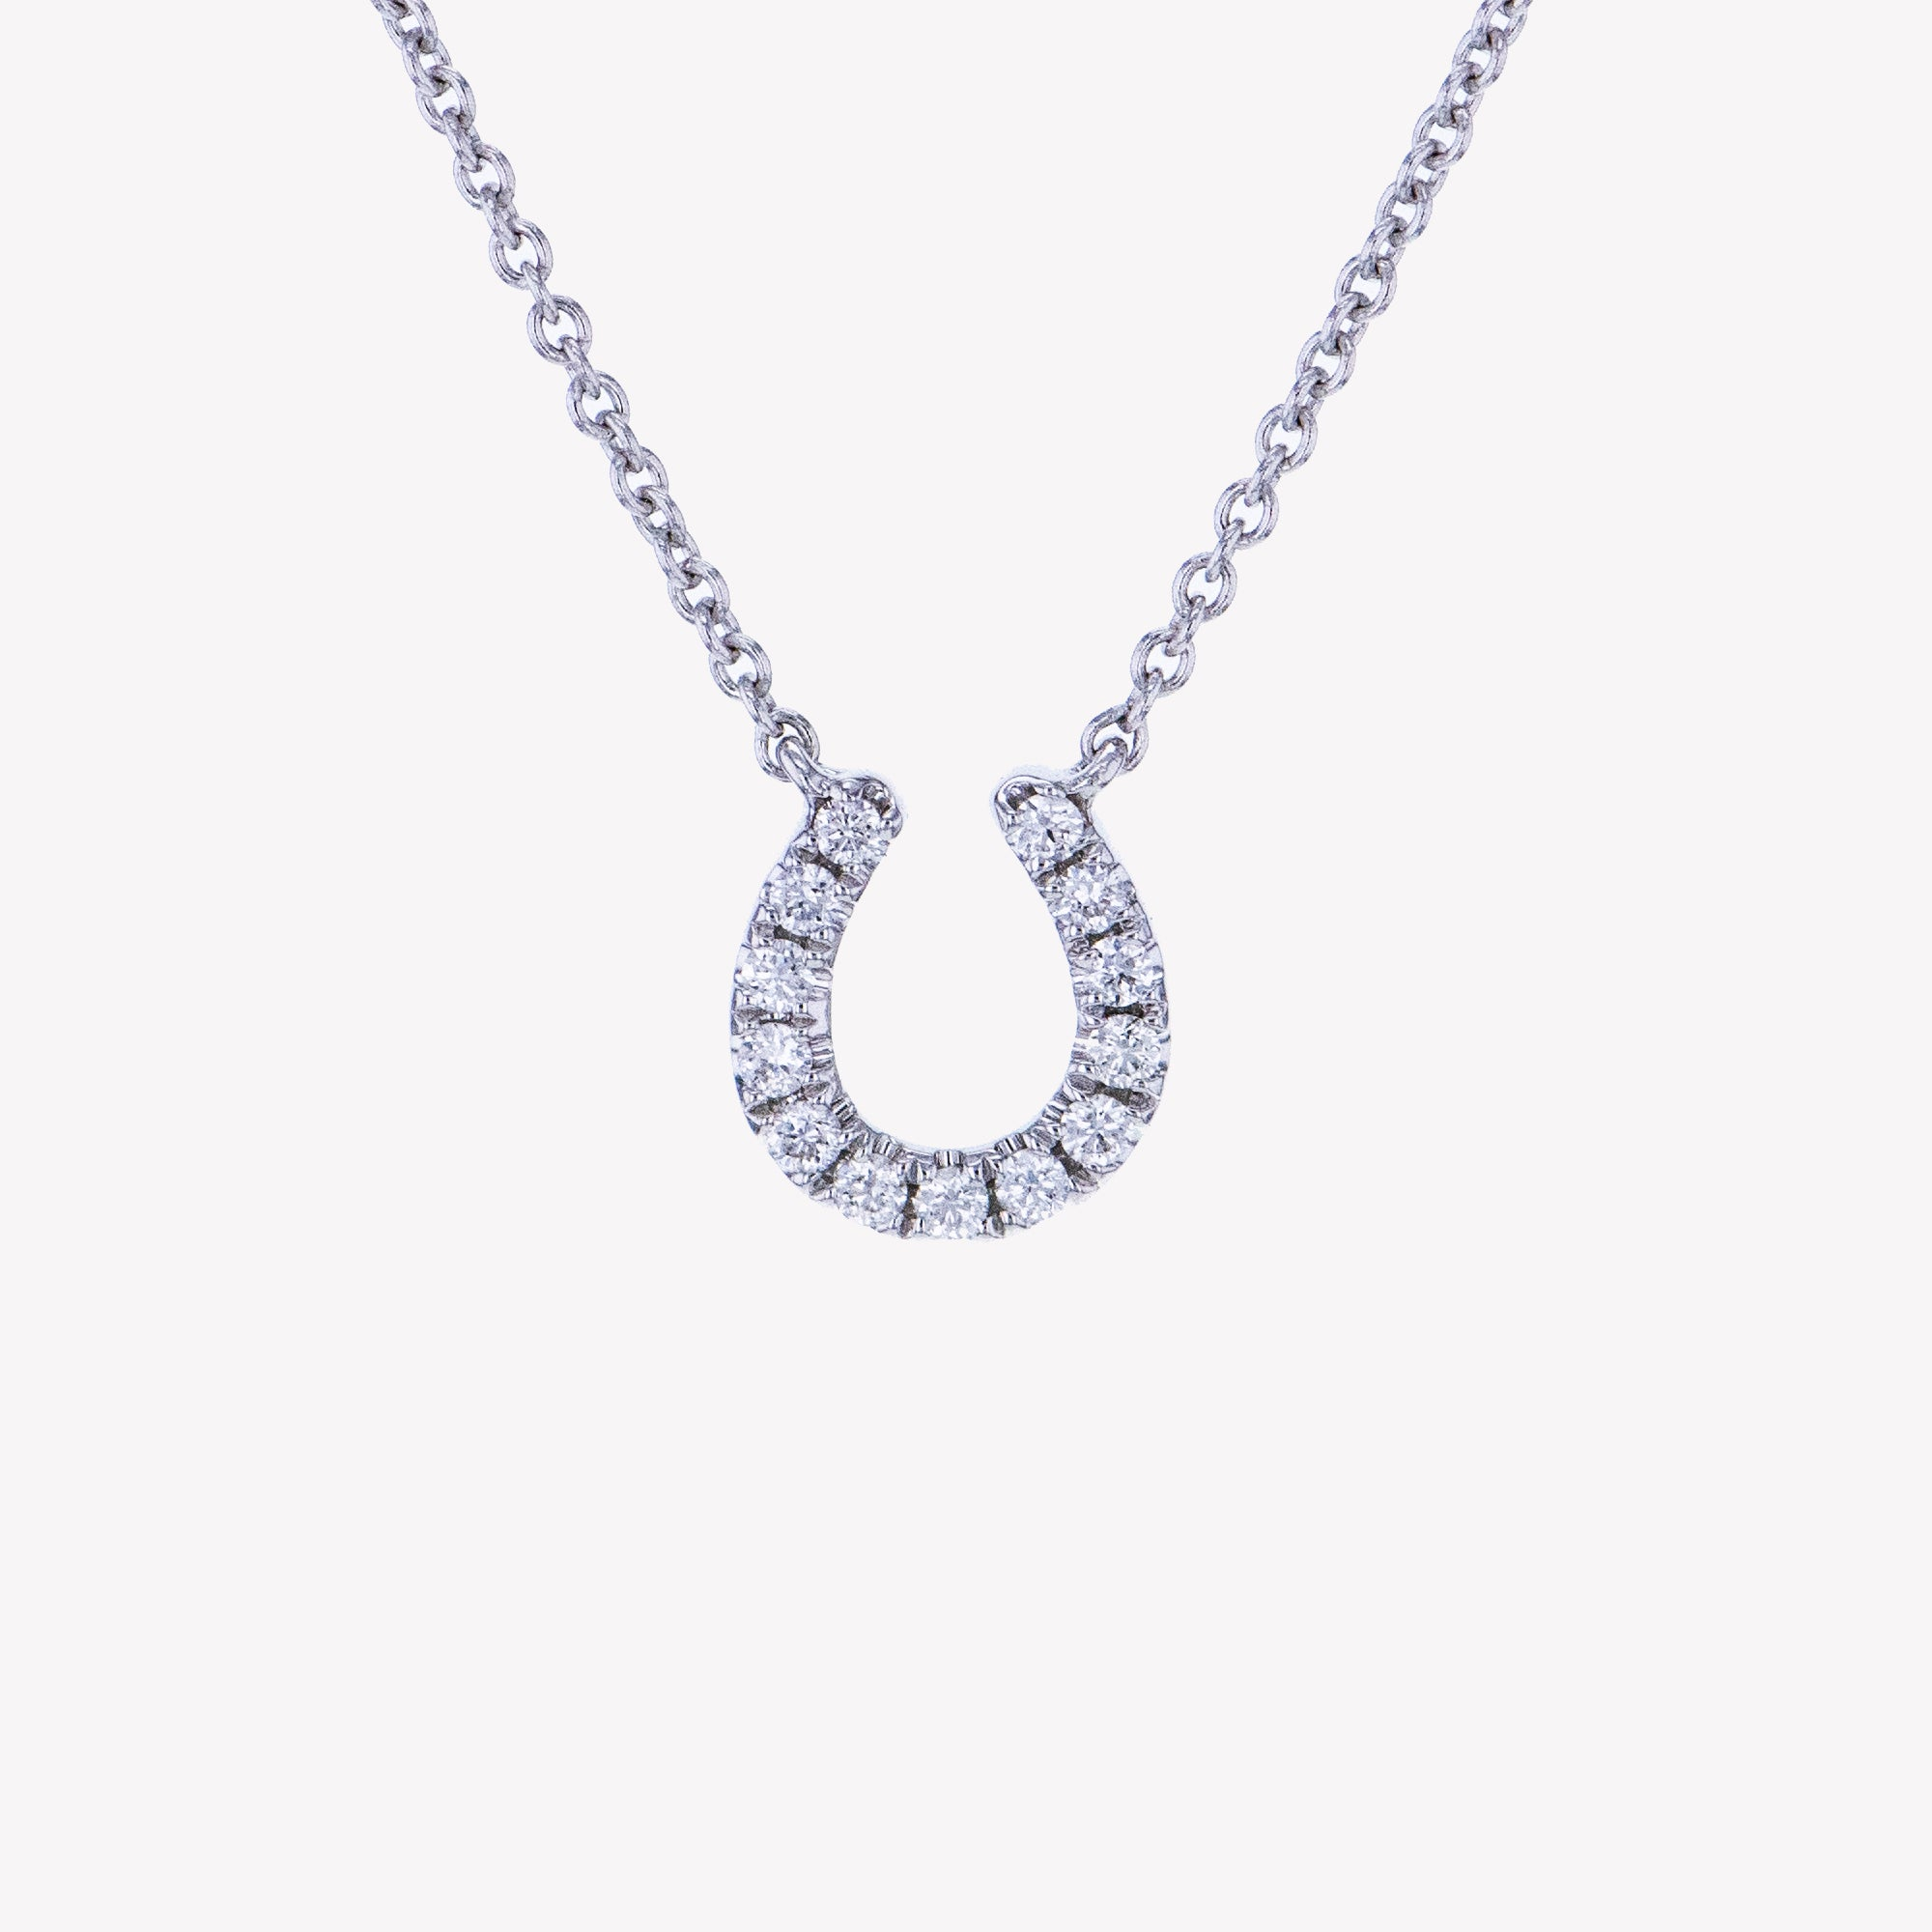 Horse Shoe Pendant With Chain in White Gold